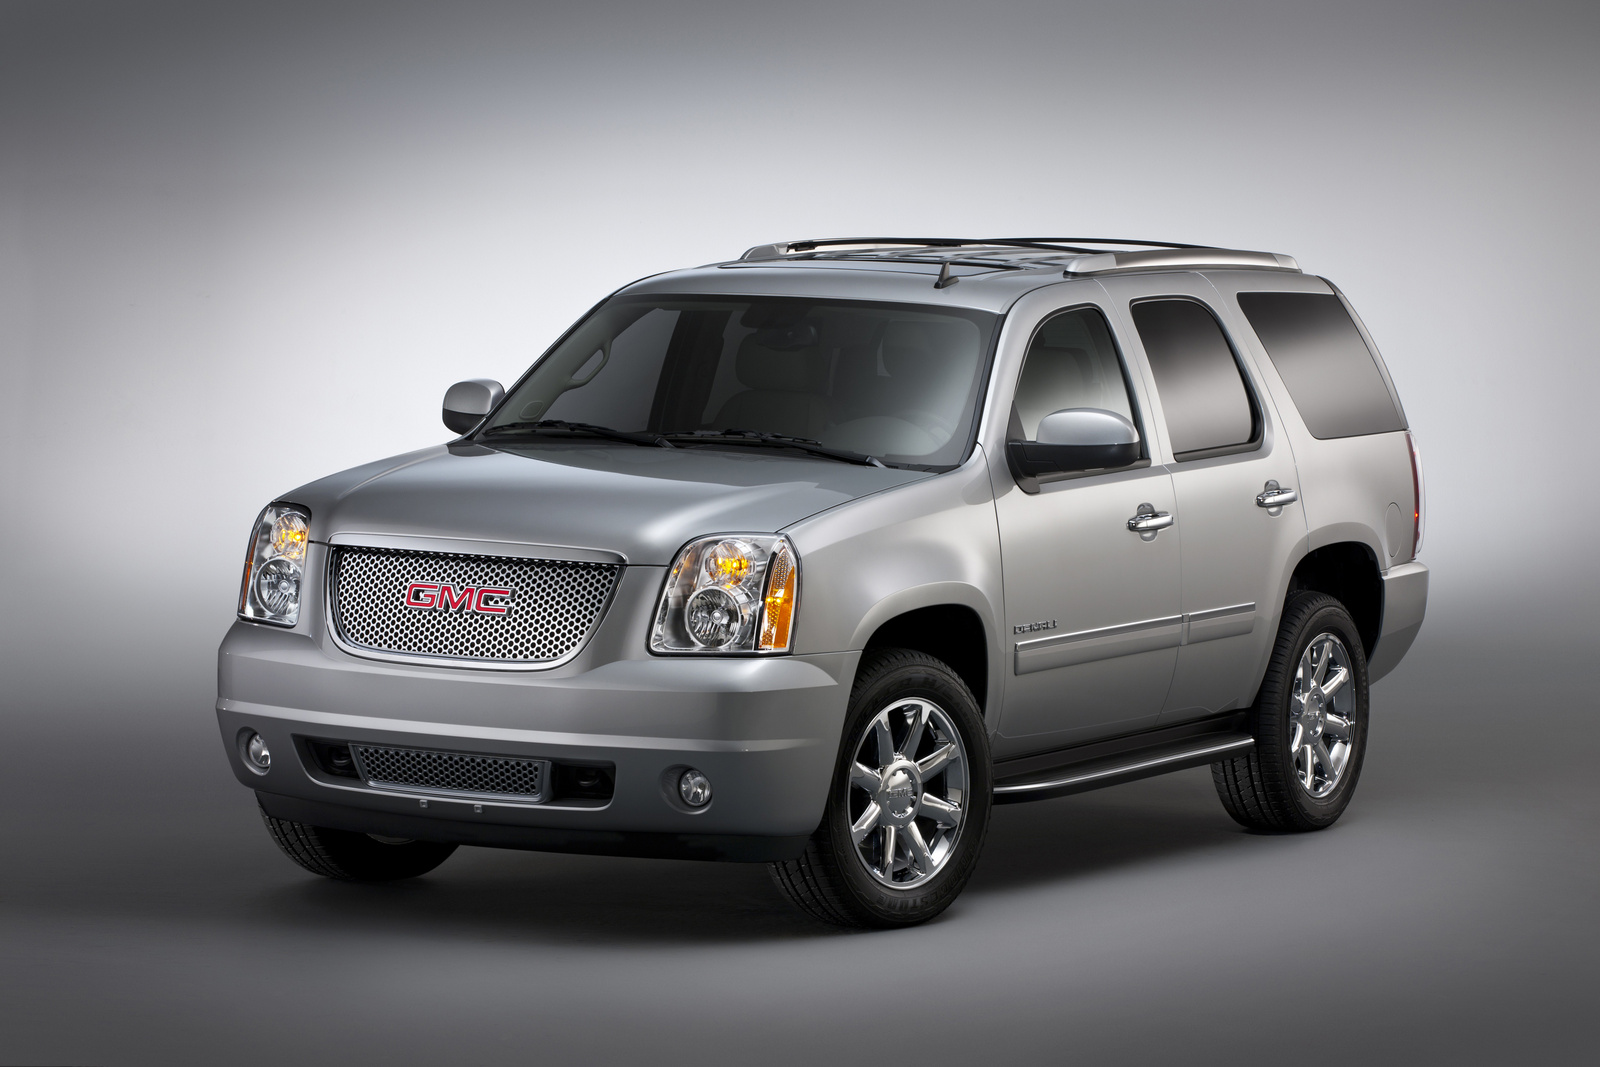 2013 GMC Yukon Denali, Front-quarter view. Copyright General Motors, manufacturer, exterior